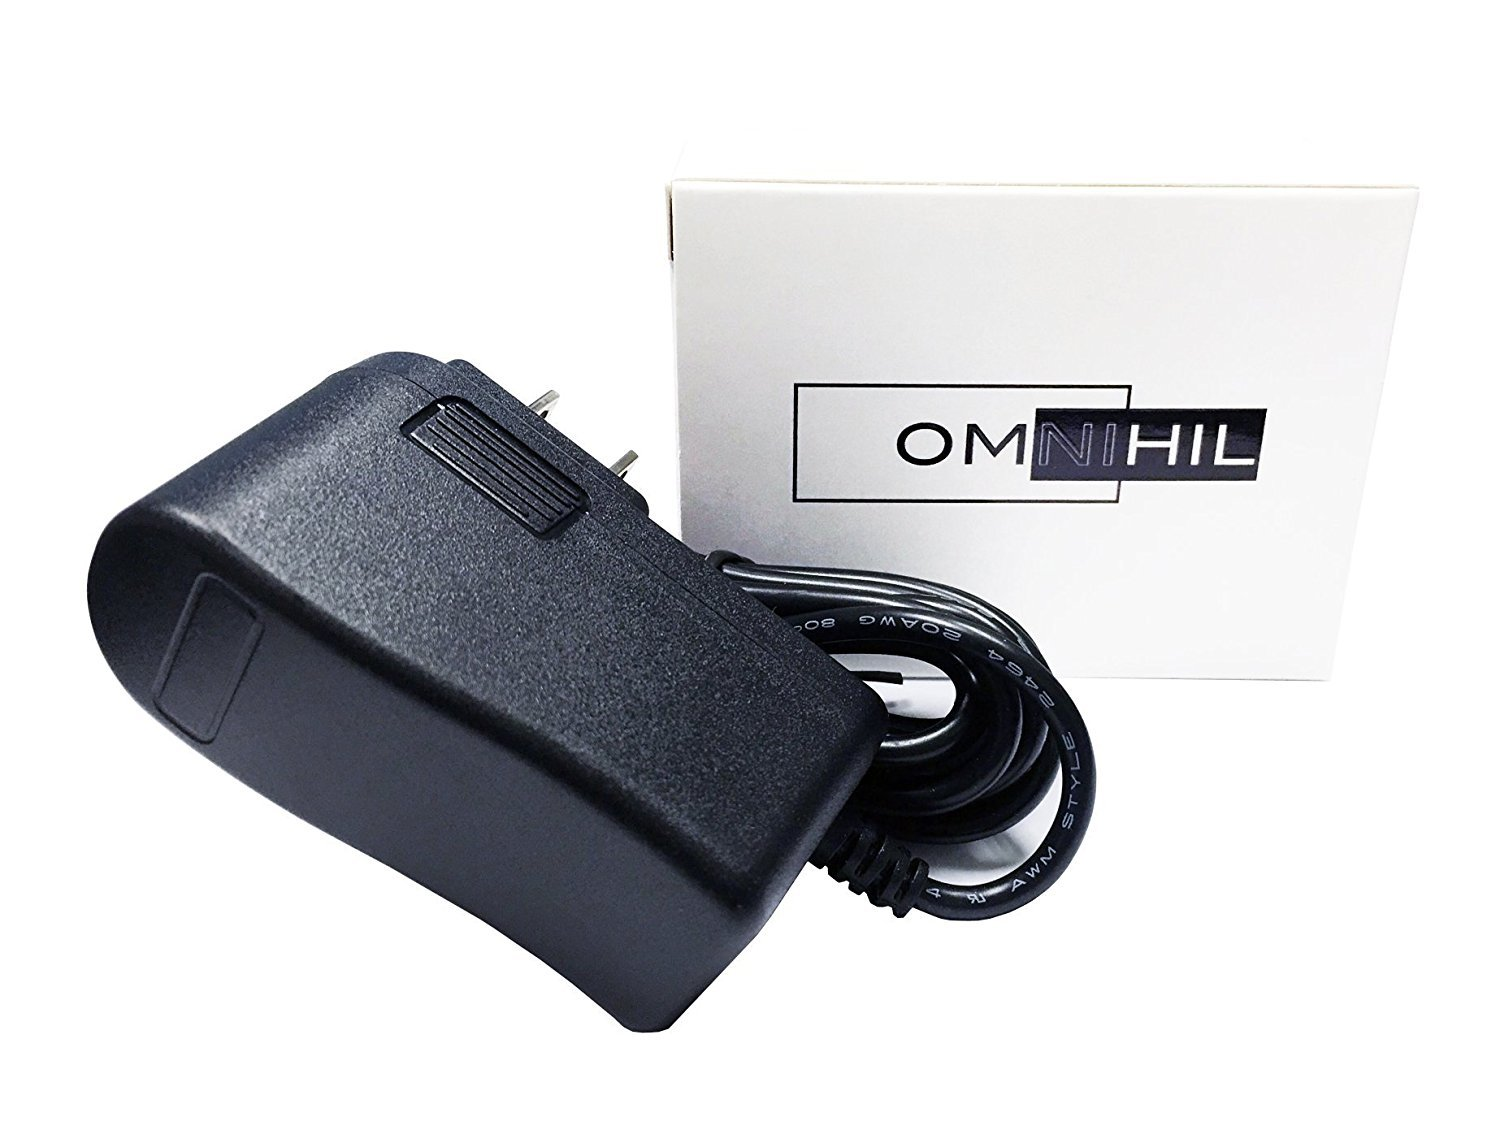 OMNIHIL Replacement (8 FT Cord) AC/DC Power Adapter/Adaptor 2A Rapid Charger for VISUAL LAND PRESTIGE 7 7D 7G 7L 10 Pro 10D; Elite ME-7Q ME-10Q, Pro ME-7DS; Connect 9; ME-110 VL-879 VL-109 ME-107 ME-7D ME-10D Google Android Tablet PC Tab…